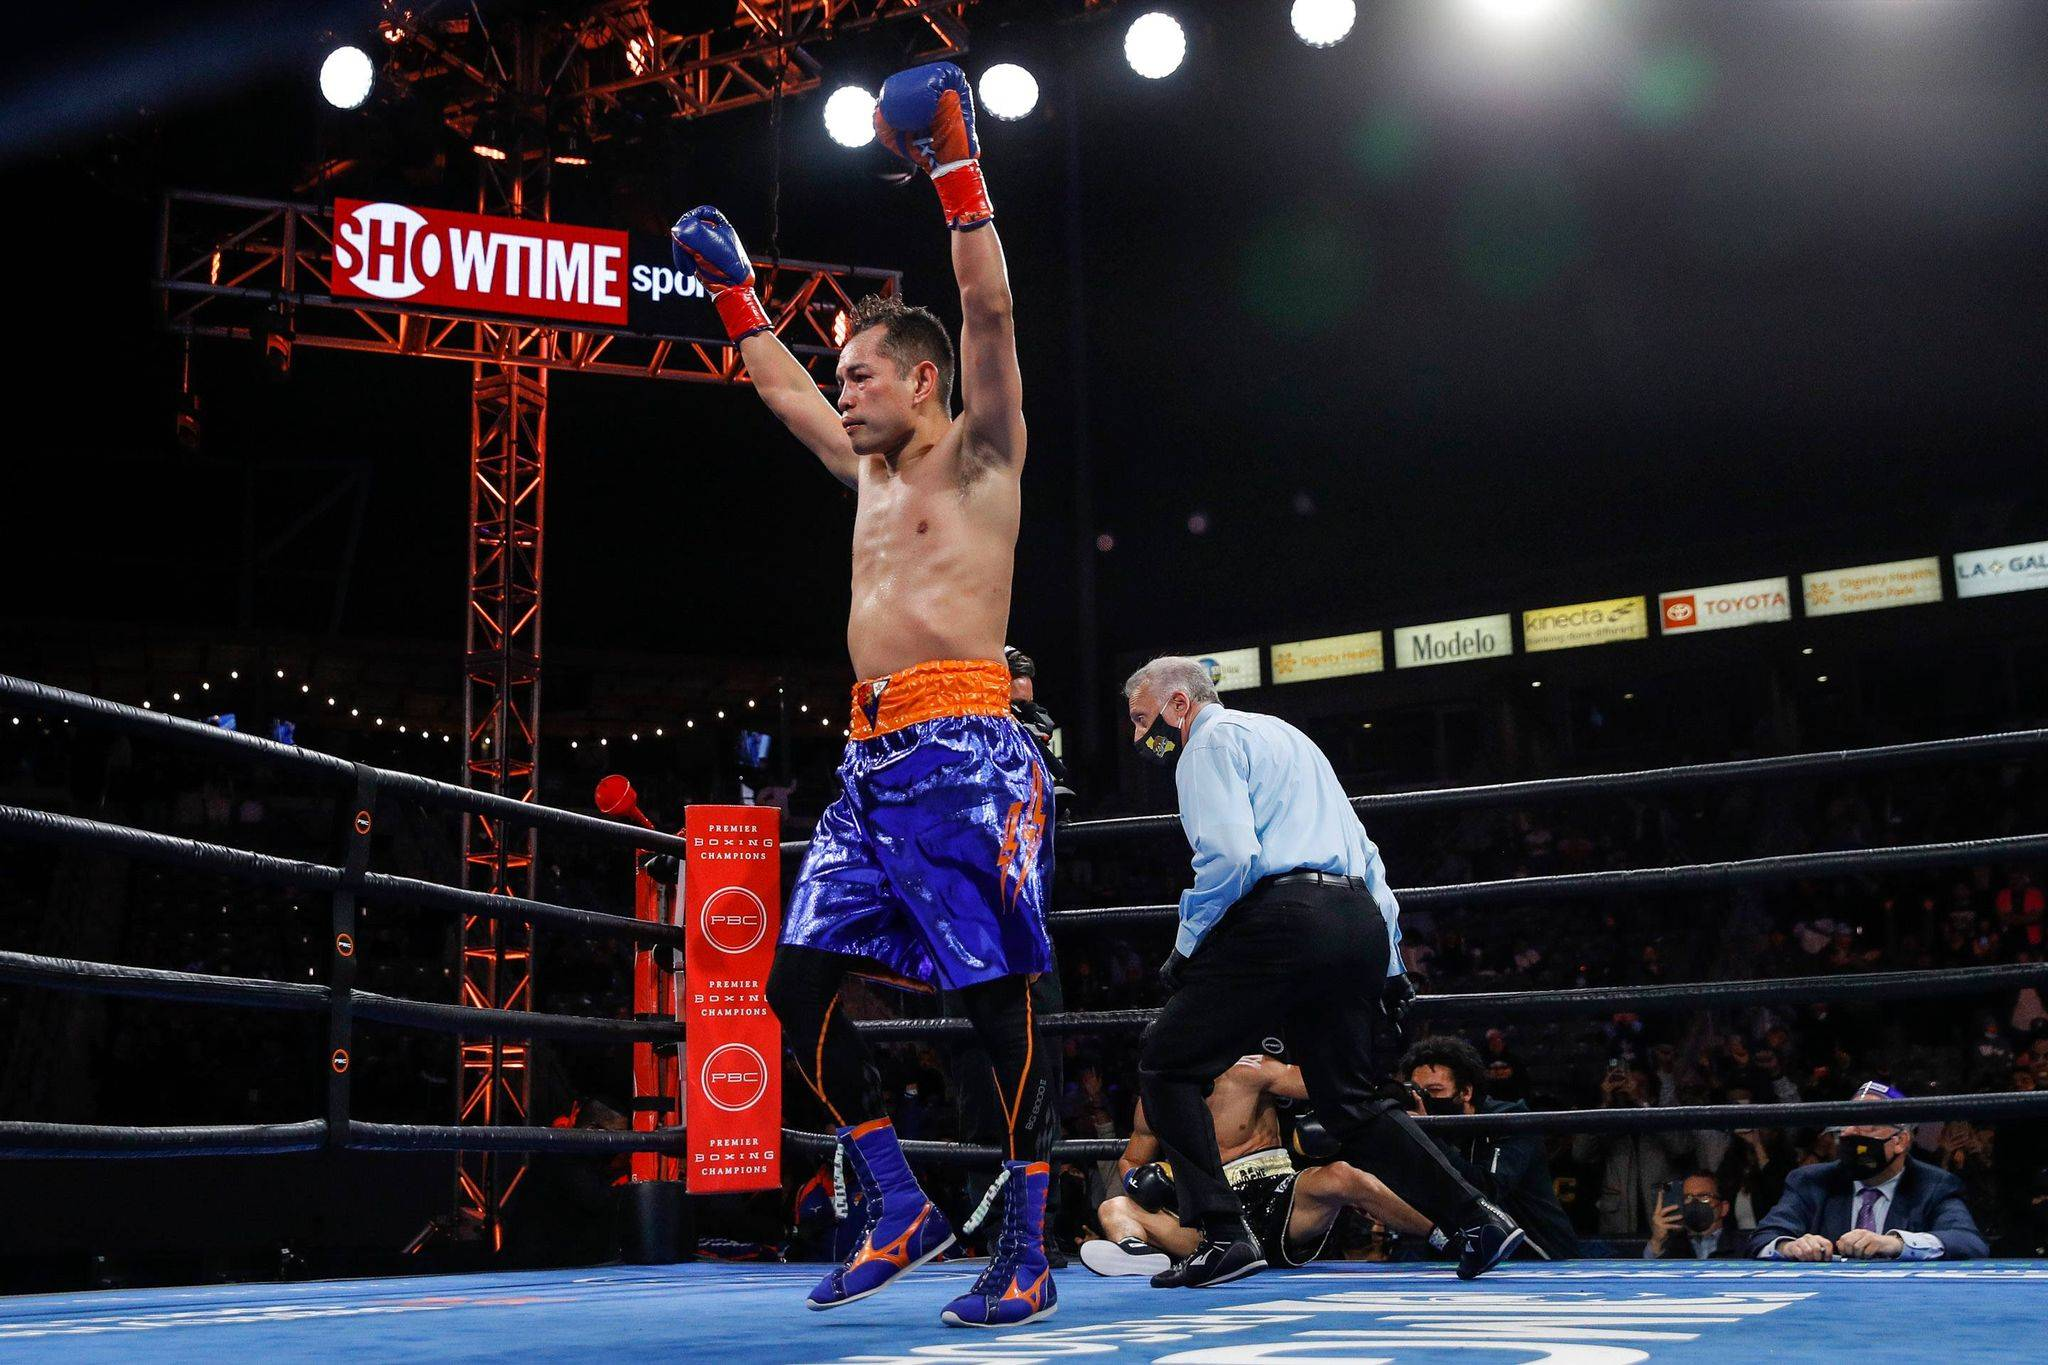 Nonito-Donaire-def-Nordine-Oubaali-2 Nonito Donaire becomes boxing's oldest bantamweight champion Boxing News  - philippine sports news